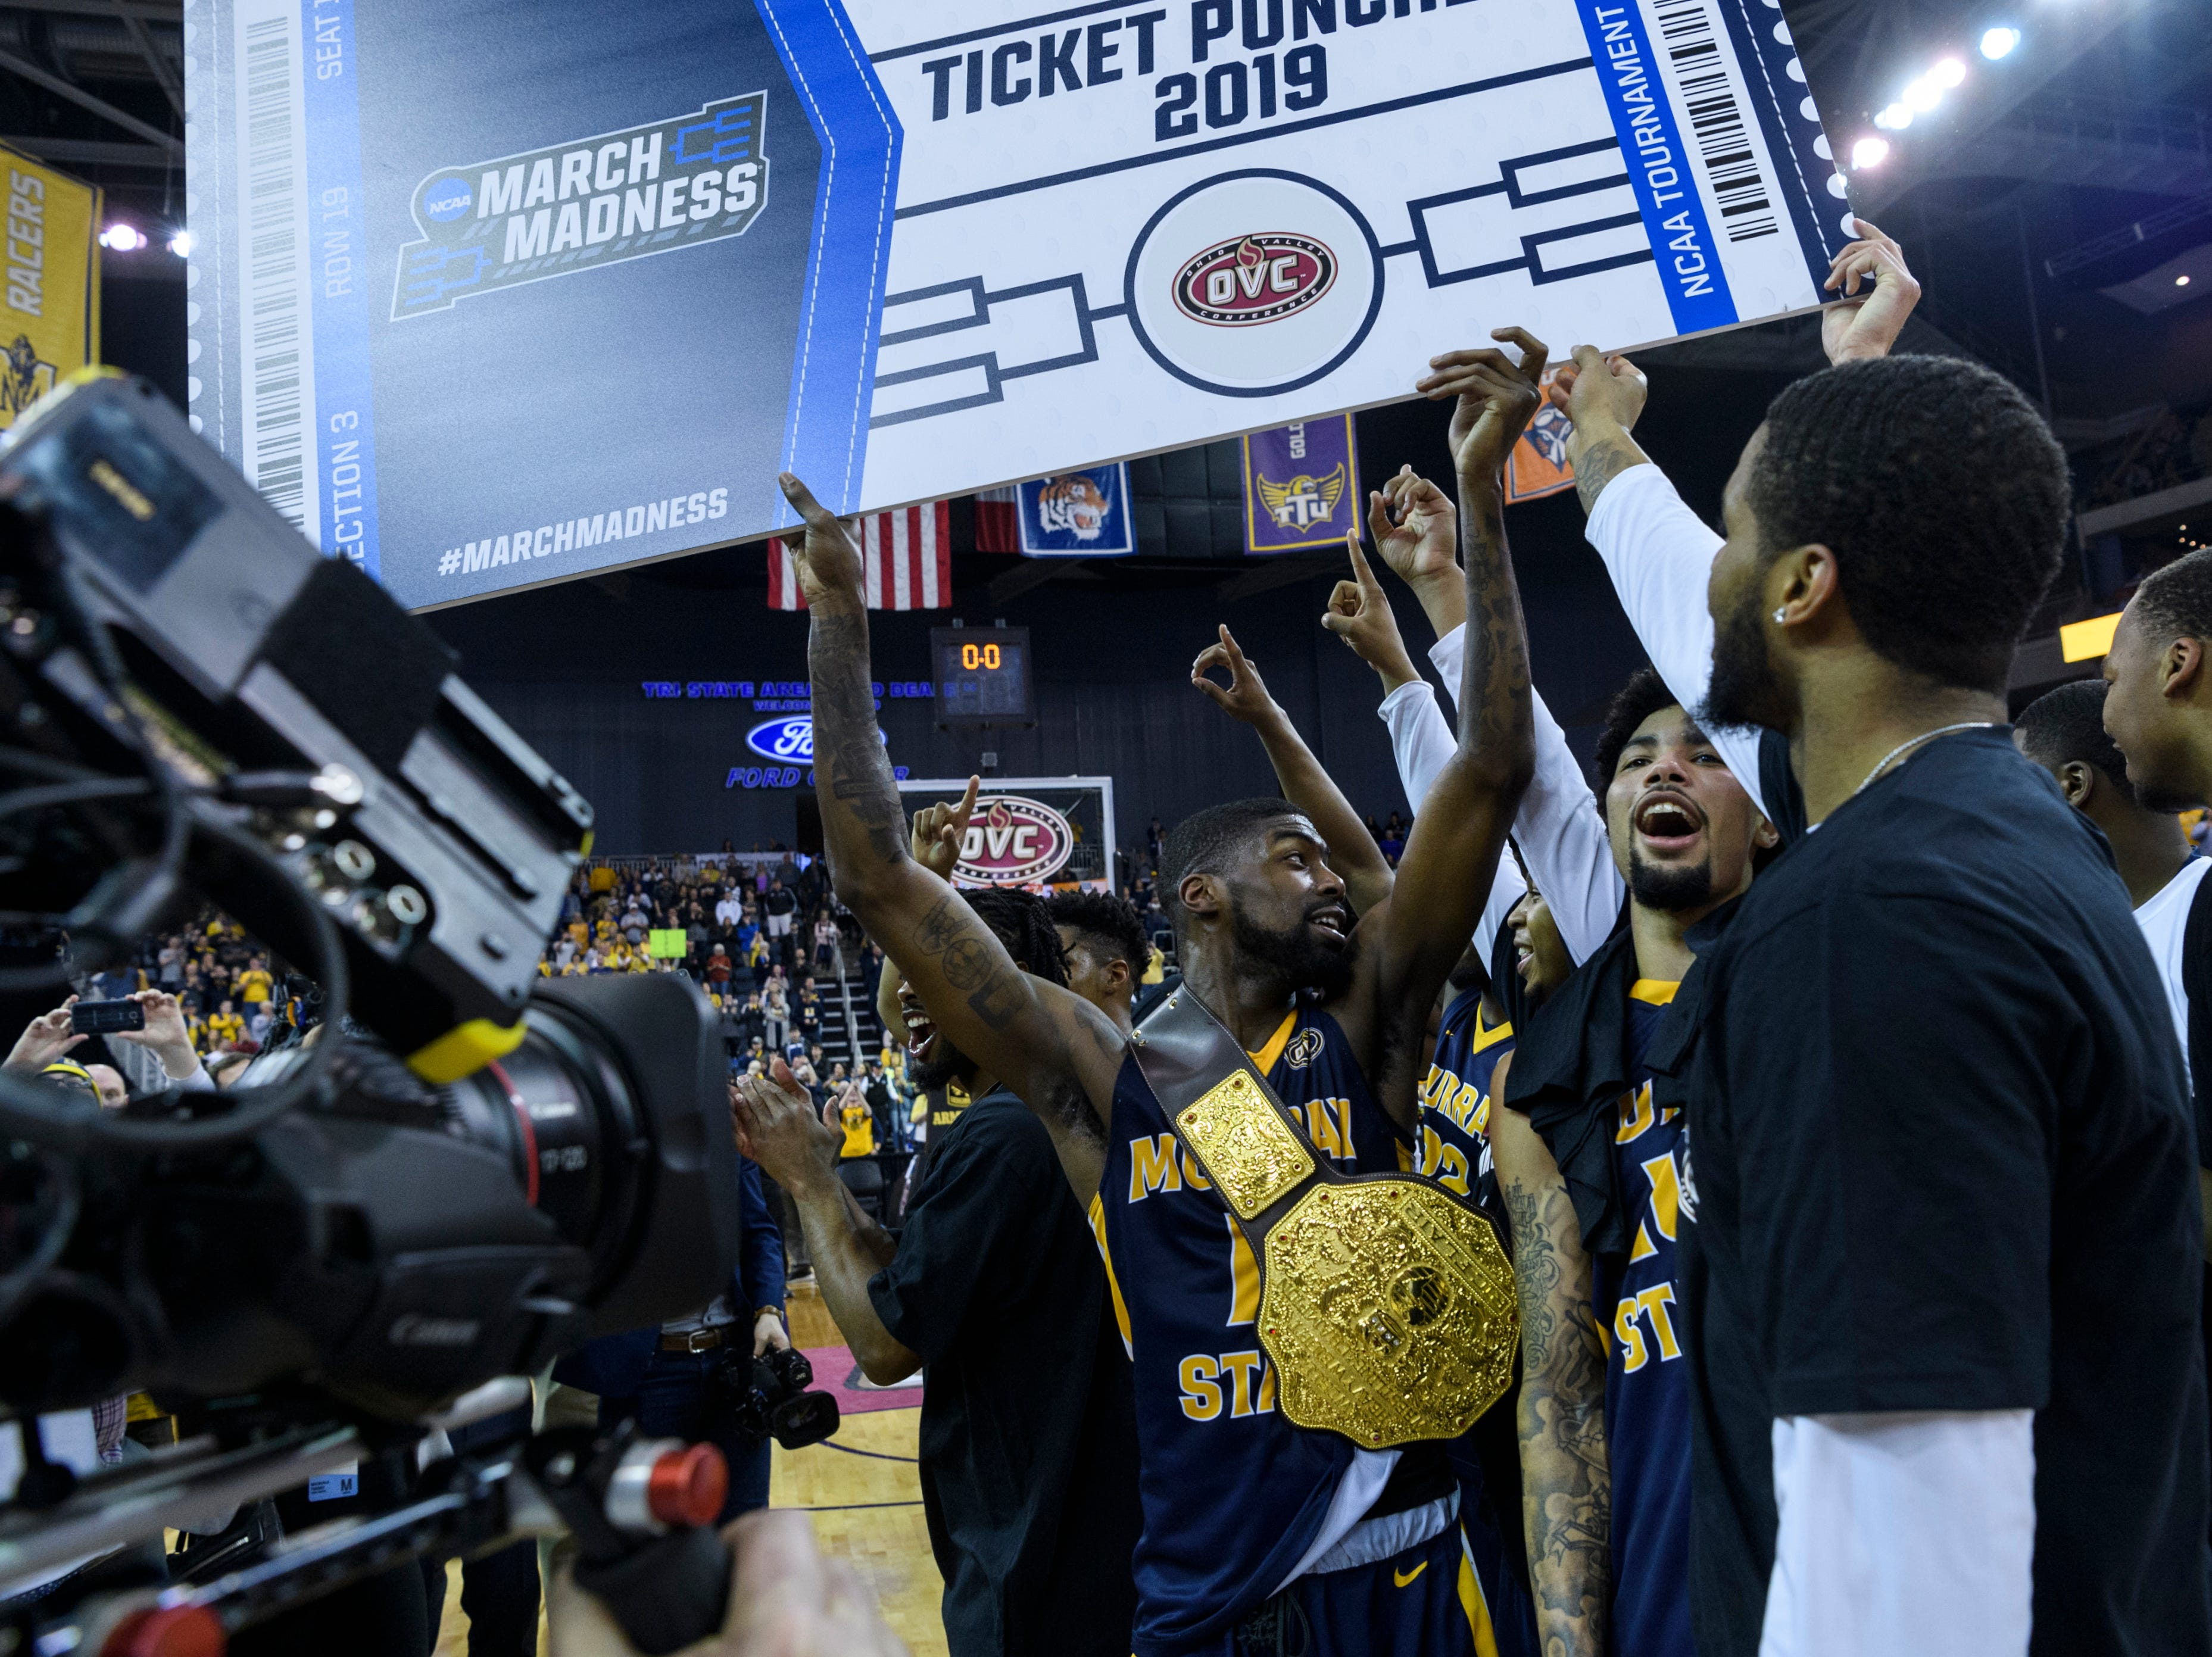 The Murray State University Racers celebrate their automatic bid to the NCAA tournament following their Ohio Valley Conference championship win at Ford Center in Evansville, Ind., Saturday, March 9, 2019. The Racers earned the OVC men's championship title after defeating the Bruins, 77-65.